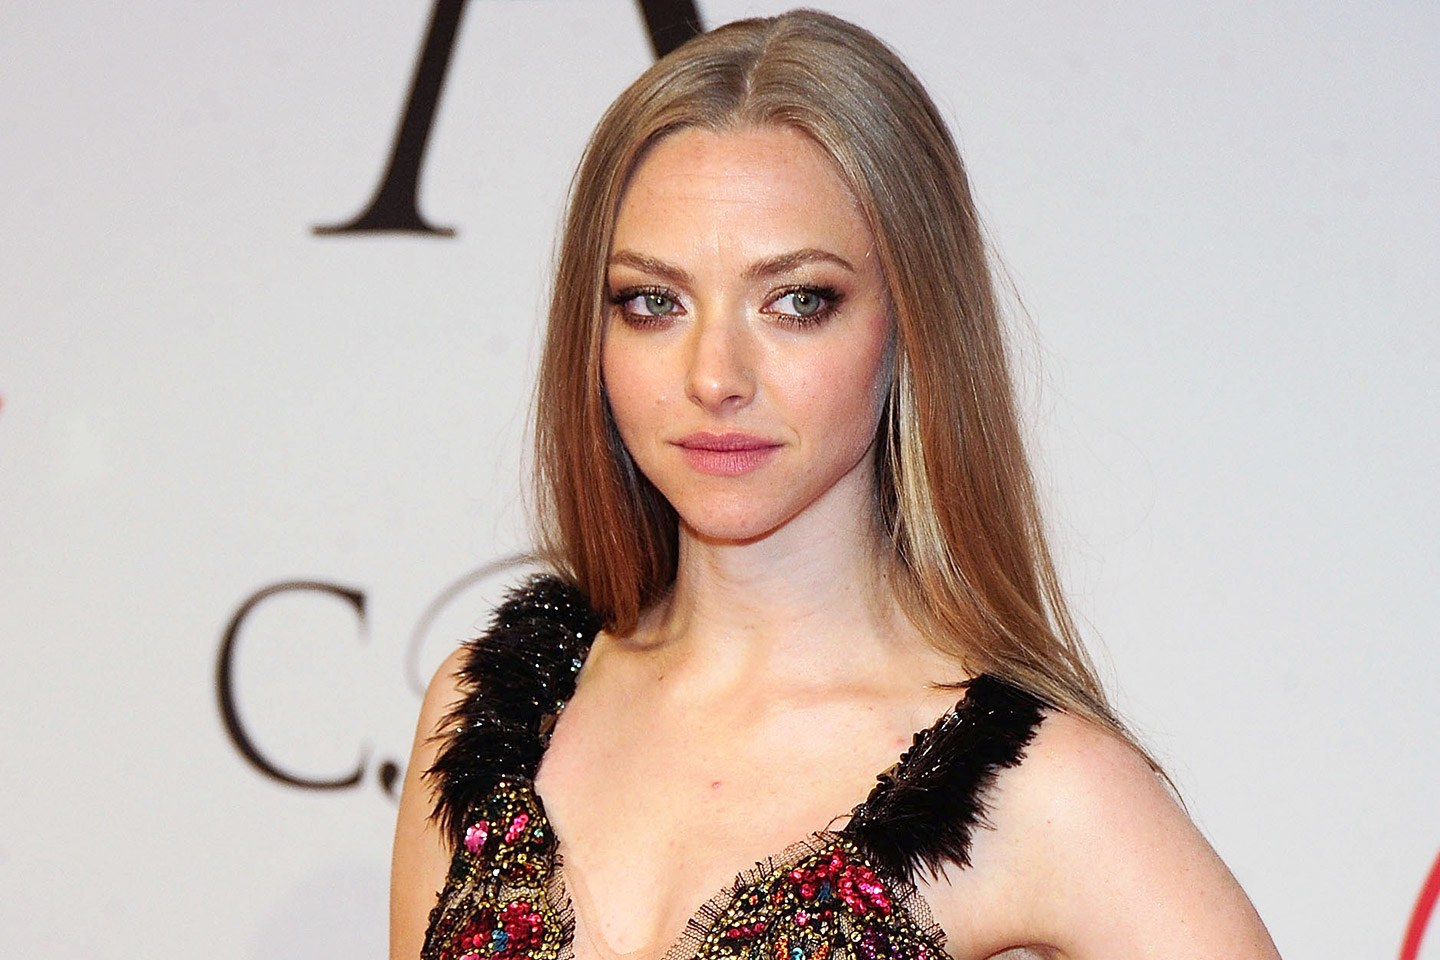 Cute Amanda Seyfried Style Mobile Free Download Hd Photos